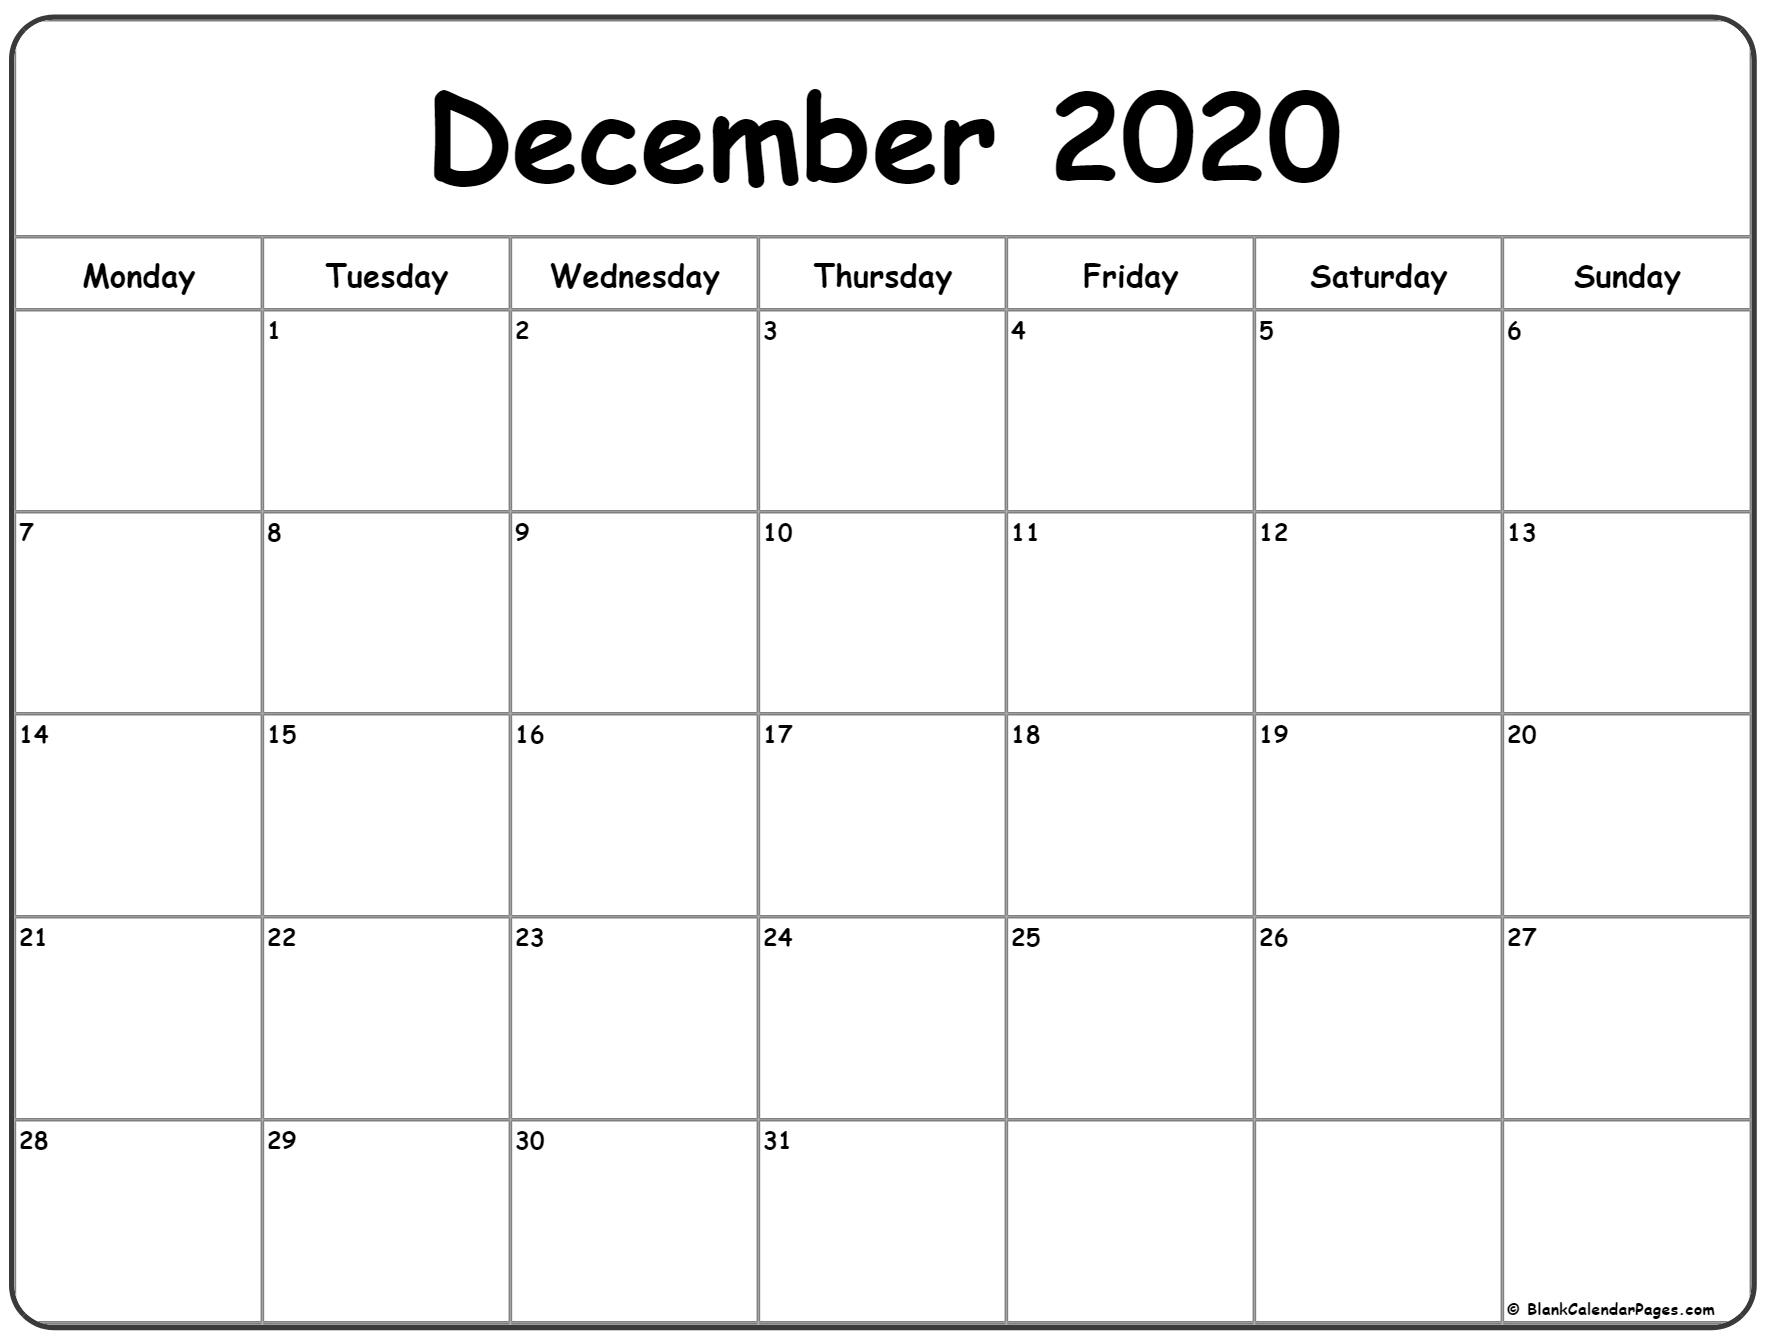 December 2020 Monday Calendar | Monday To Sunday within Calander For December 2020